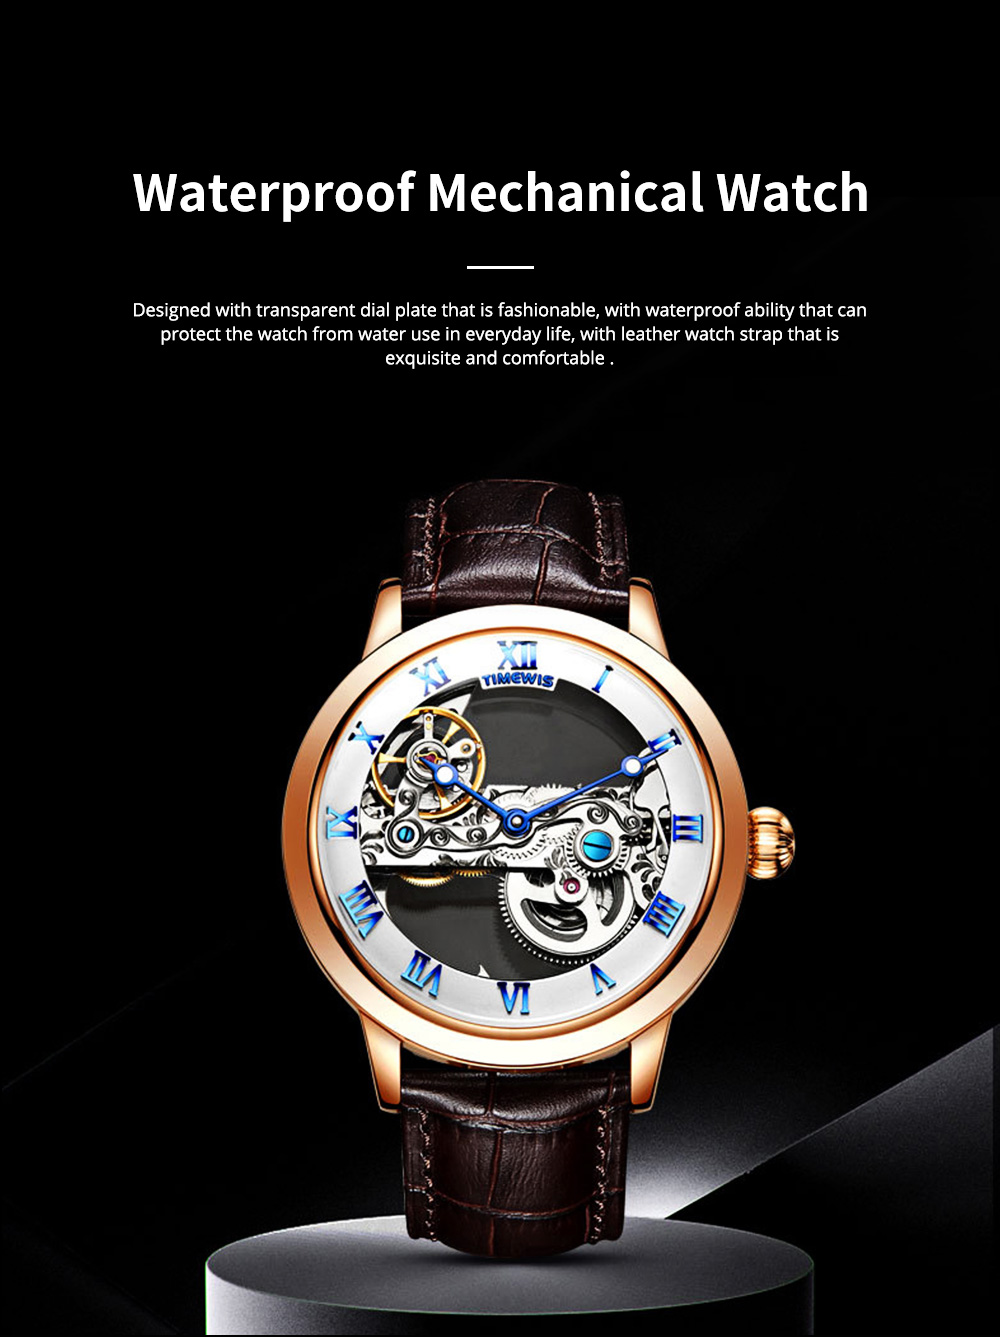 Waterproof Mechanical Watch for Men Transparent Fashionable with Leather Band Strap Scratchproof 0